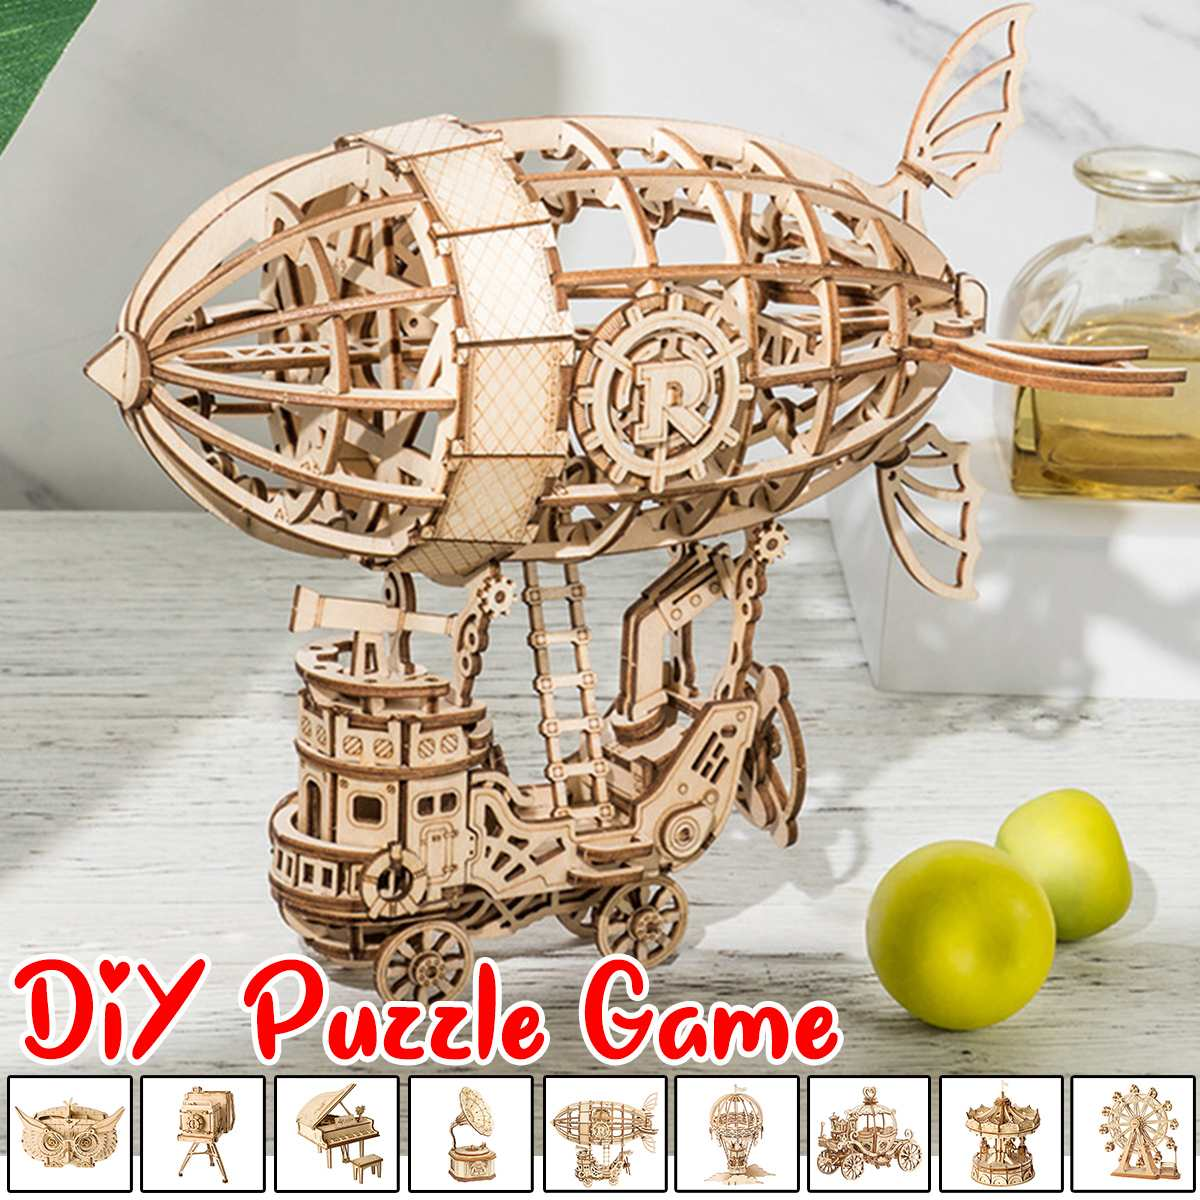 DIY 3D Wooden Puzzle Game Wooden Puzzle Gramophone Box,Pumpkin Cart Wooden Puzzle Game Assembly Popular Toy Gift